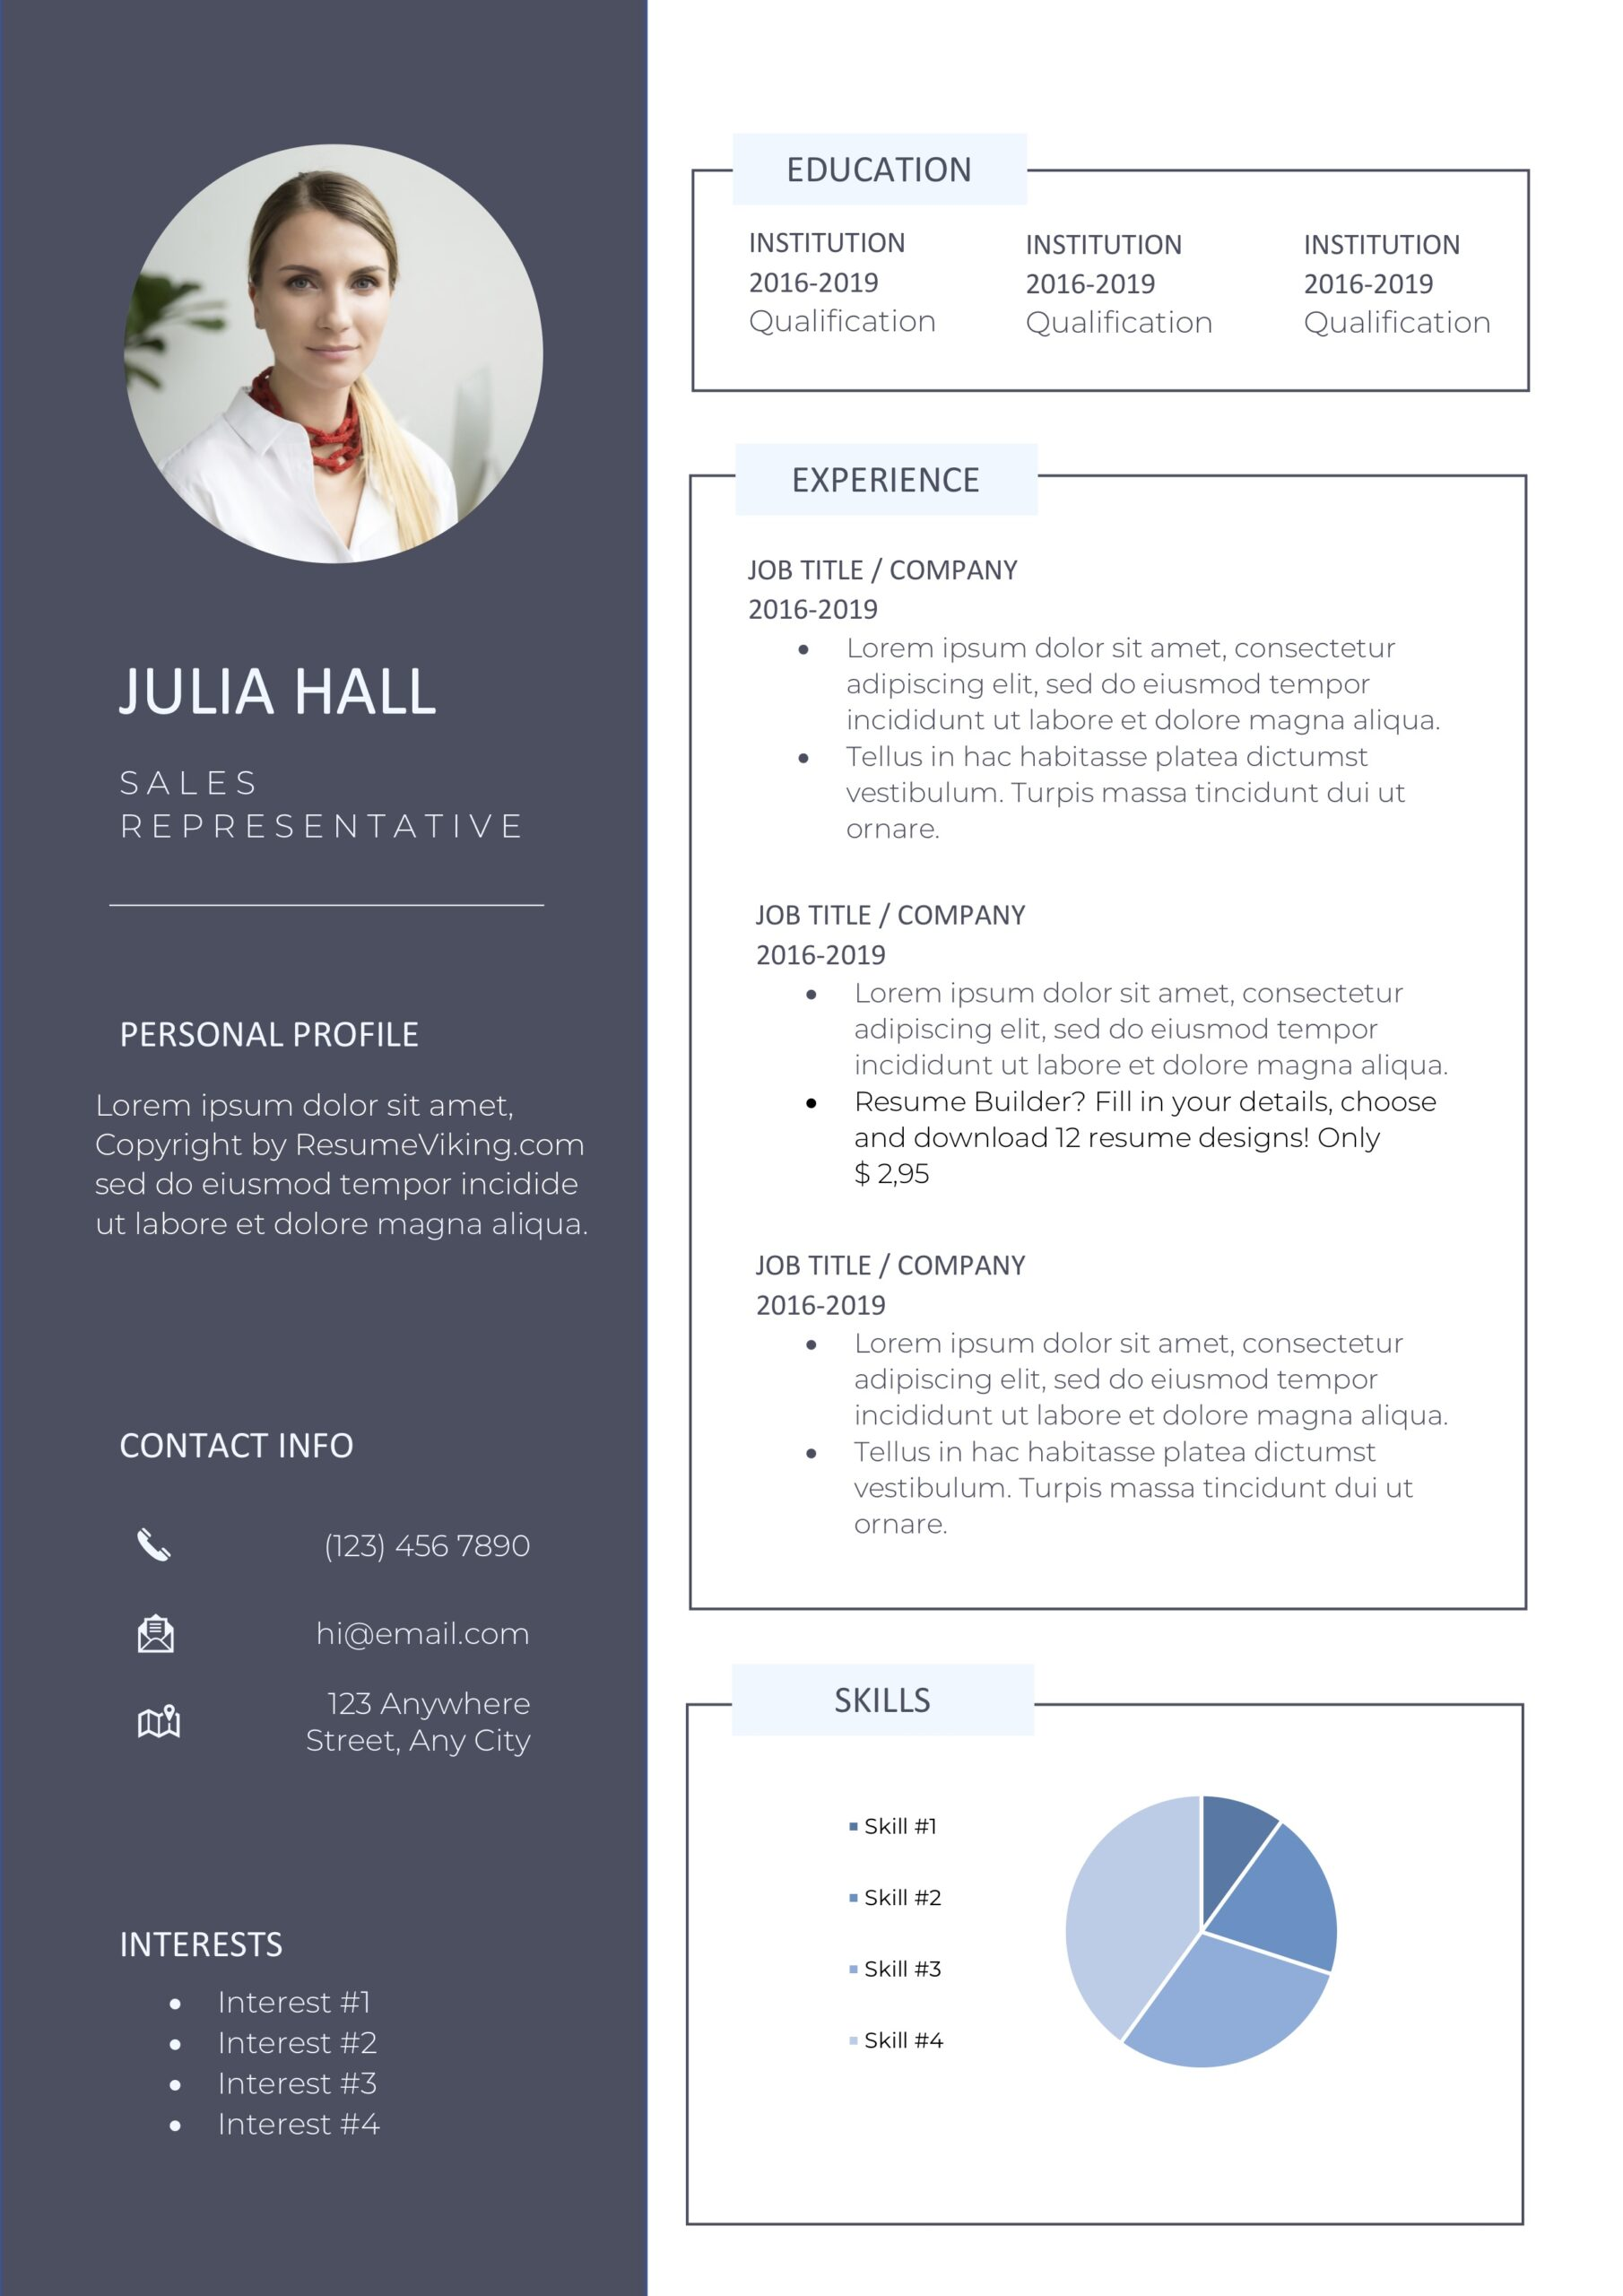 resume templates pdf word free downloads and guides template grace resumeviking sap abap Resume Resume Template Word 2020 Free Download